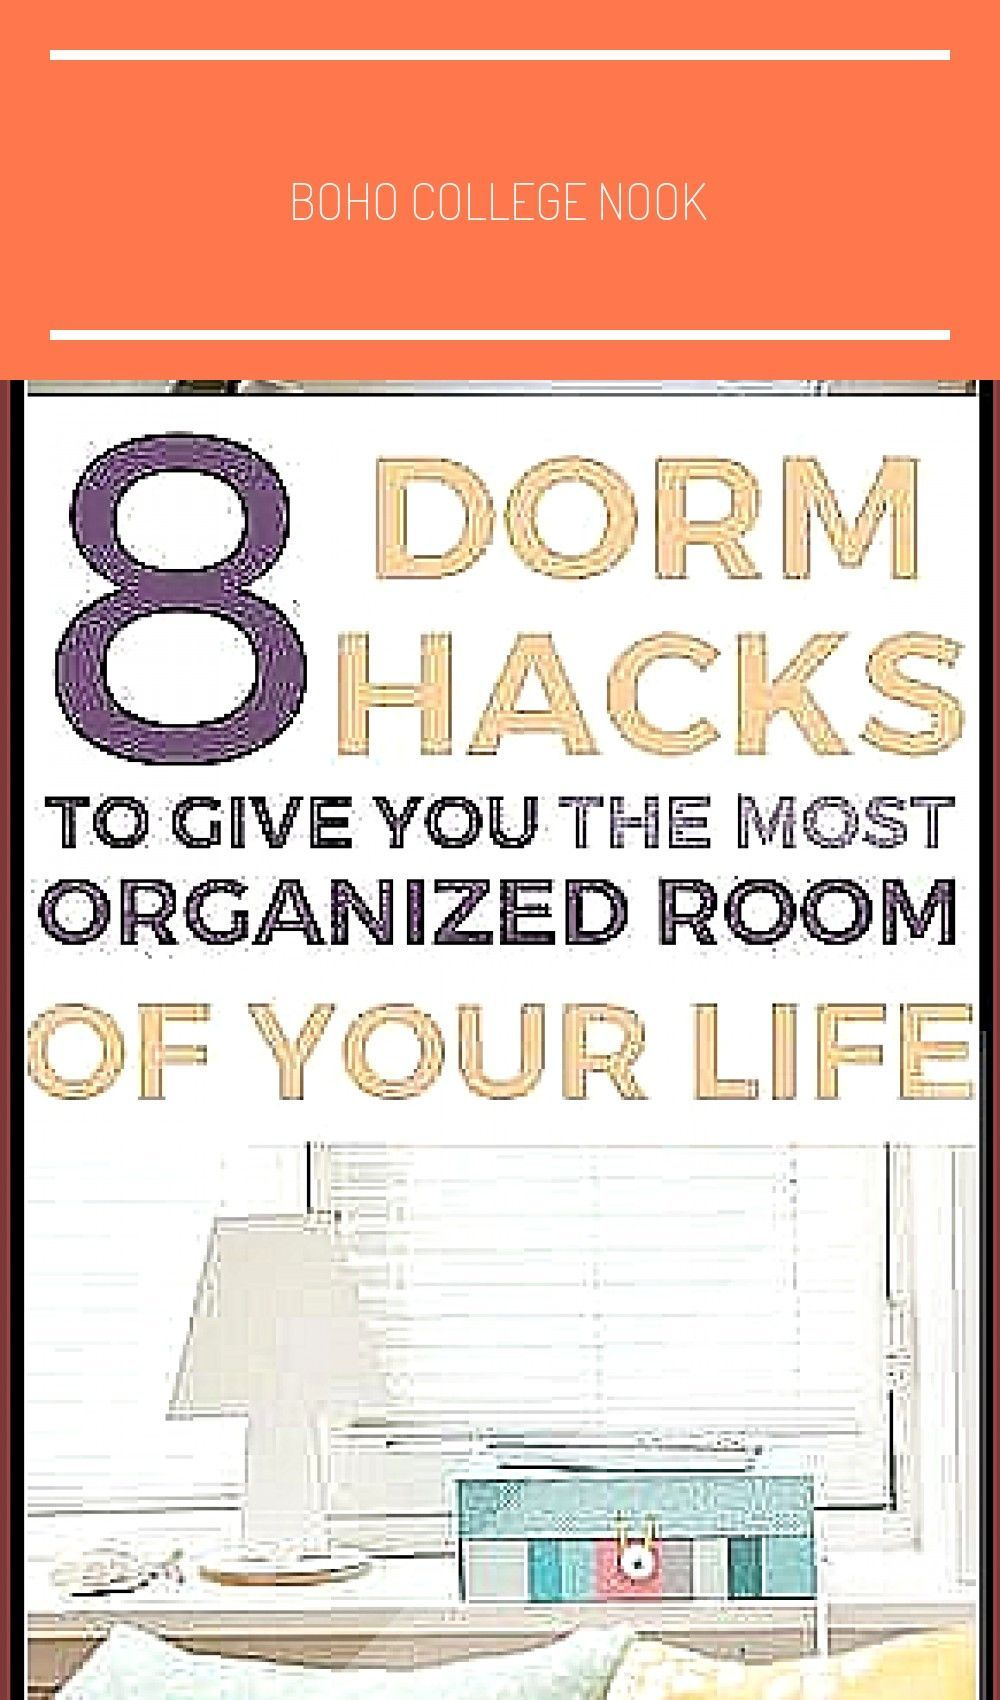 8 Dorm Room Organization Ideas for College Student Budget College DIY Dorm dorm room hacks for guys easy Girls give Guys Hacks Ideas life  8 Dorm Room Organization Ideas for College Student Budget College DIY Dorm dorm room hacks for guys easy Girls give Guys Hacks Ideas life  My Dorm Room Blog My Dorm Room Blog 8 Dorm Room Organization Ideas for College Student Budget College DIY Dorm dorm room hacks for guys easy Girls  #budget #college #dormroomhacksforguys #dormroomhacksforguys #girls #hacks #dormroomideasforguys